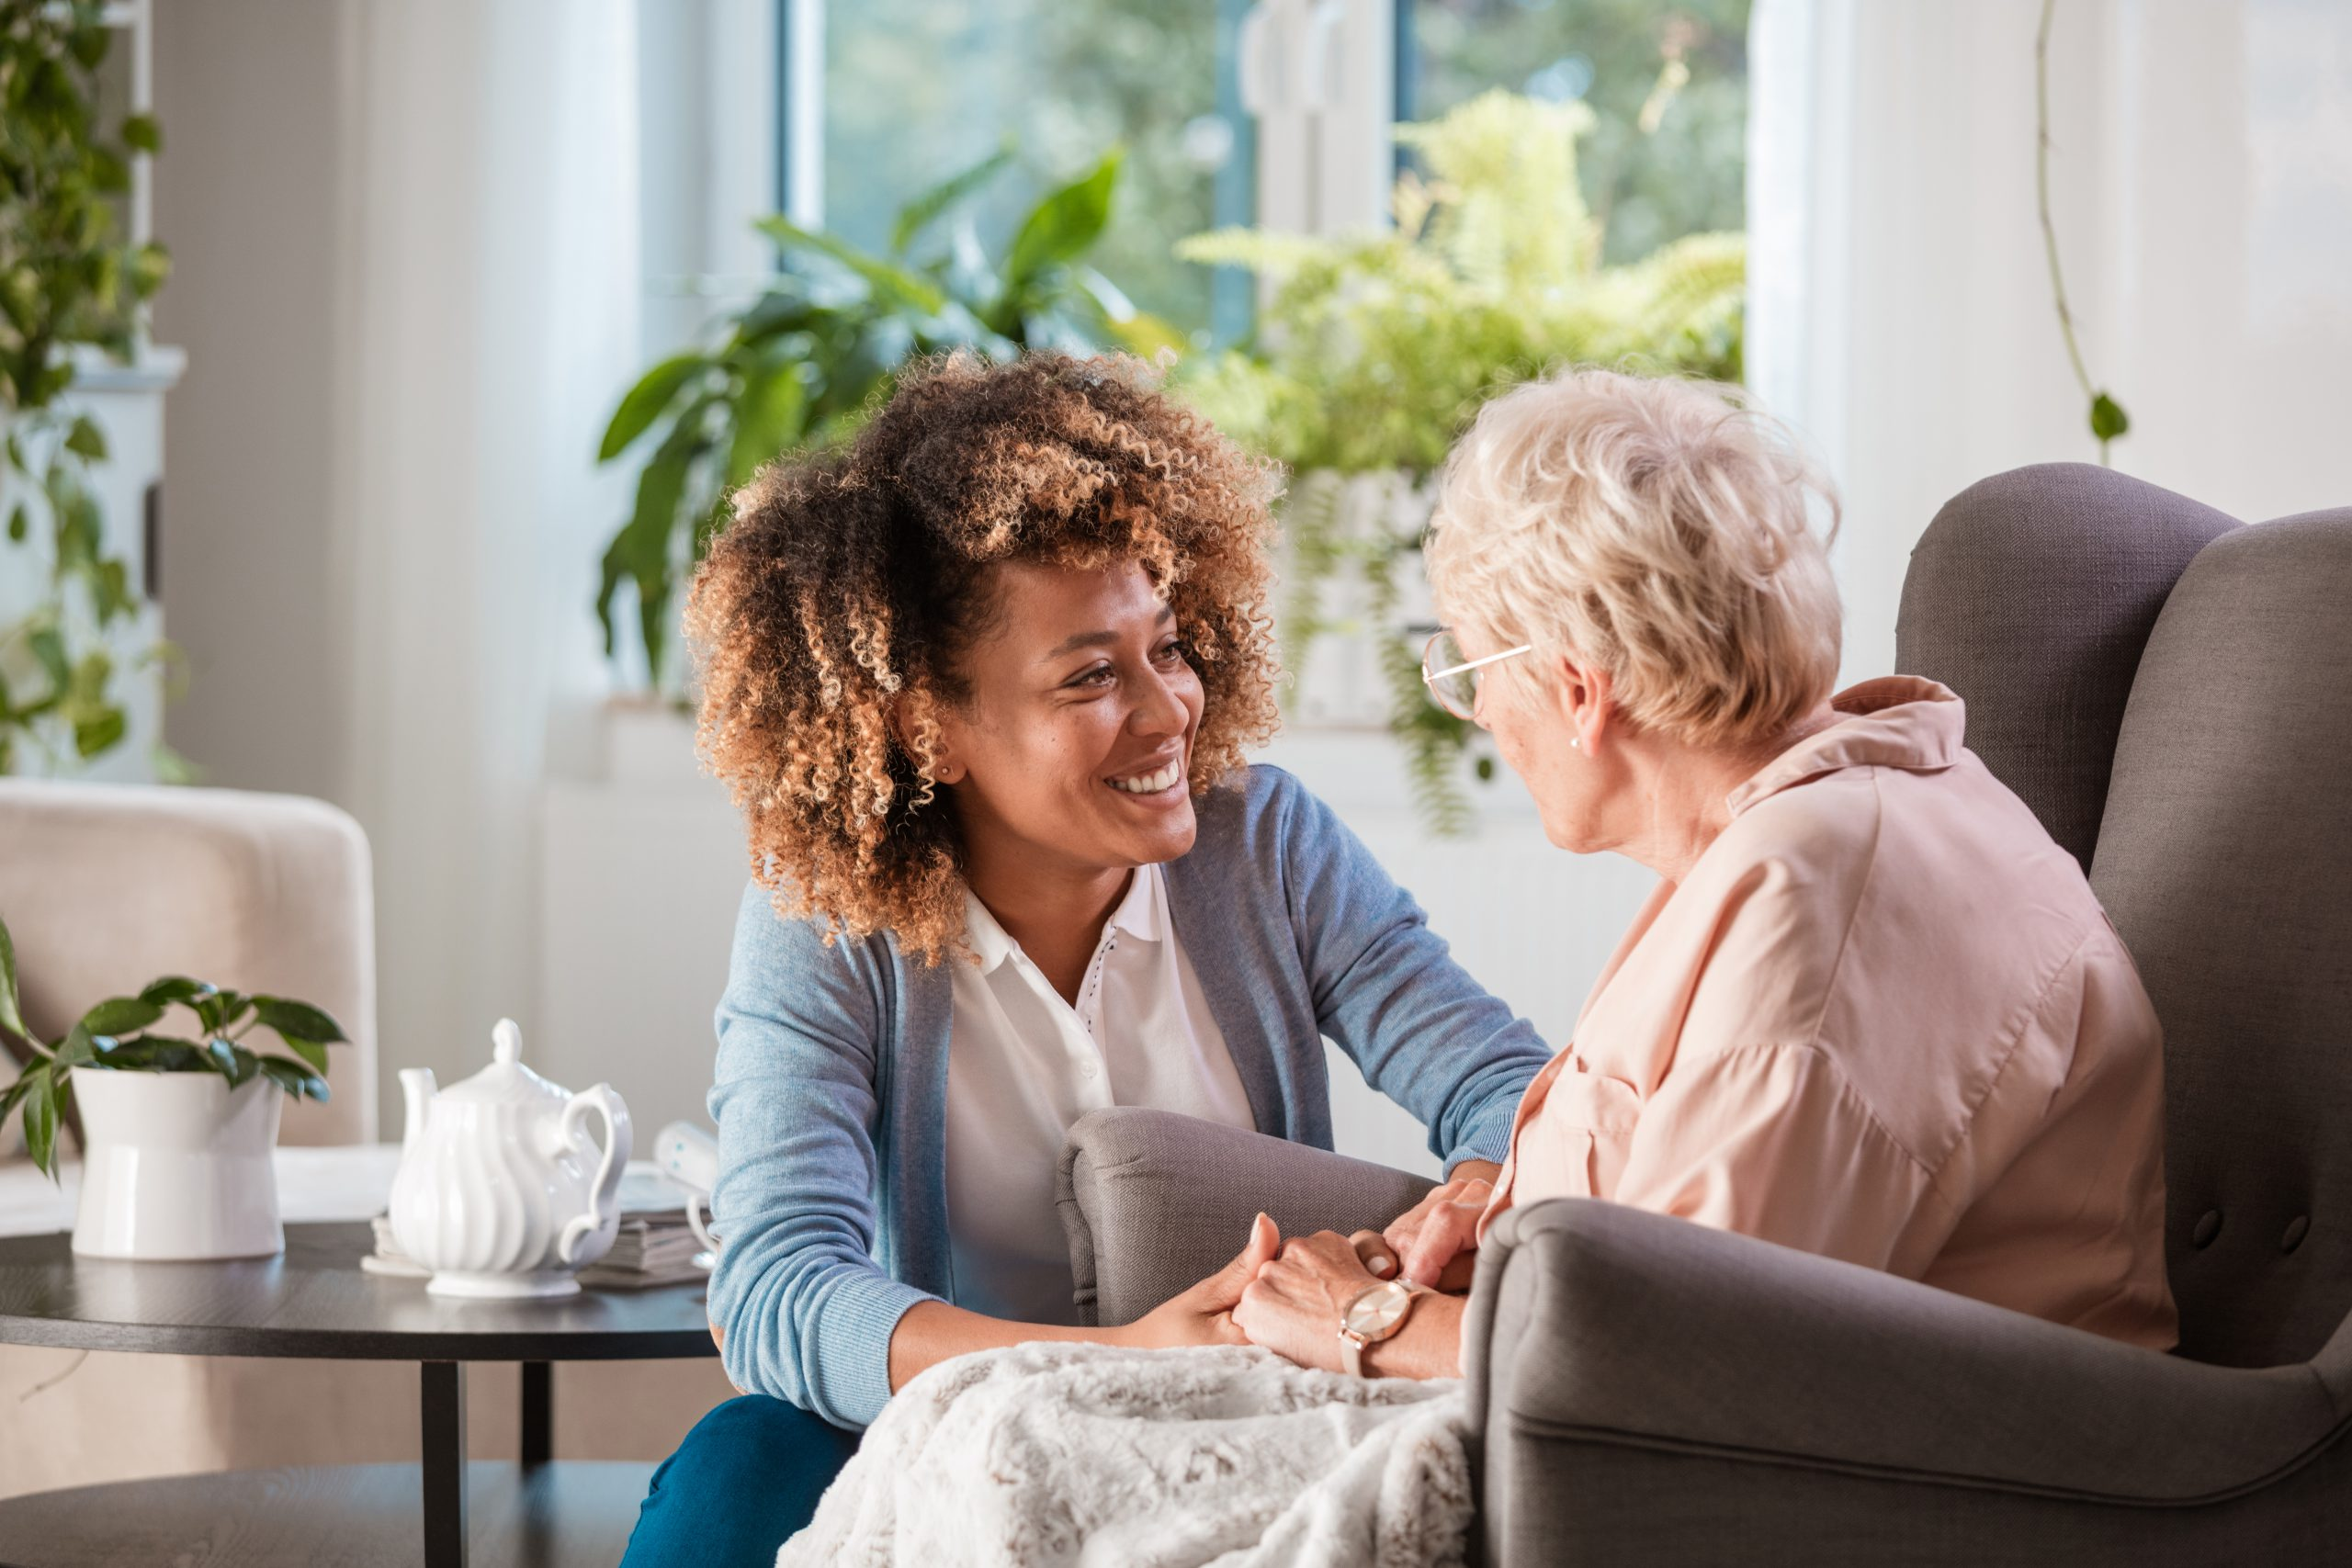 Leading the workforce through the 'once-in-a-generation' Aged Care reform: three recommendations from Aged Care experts